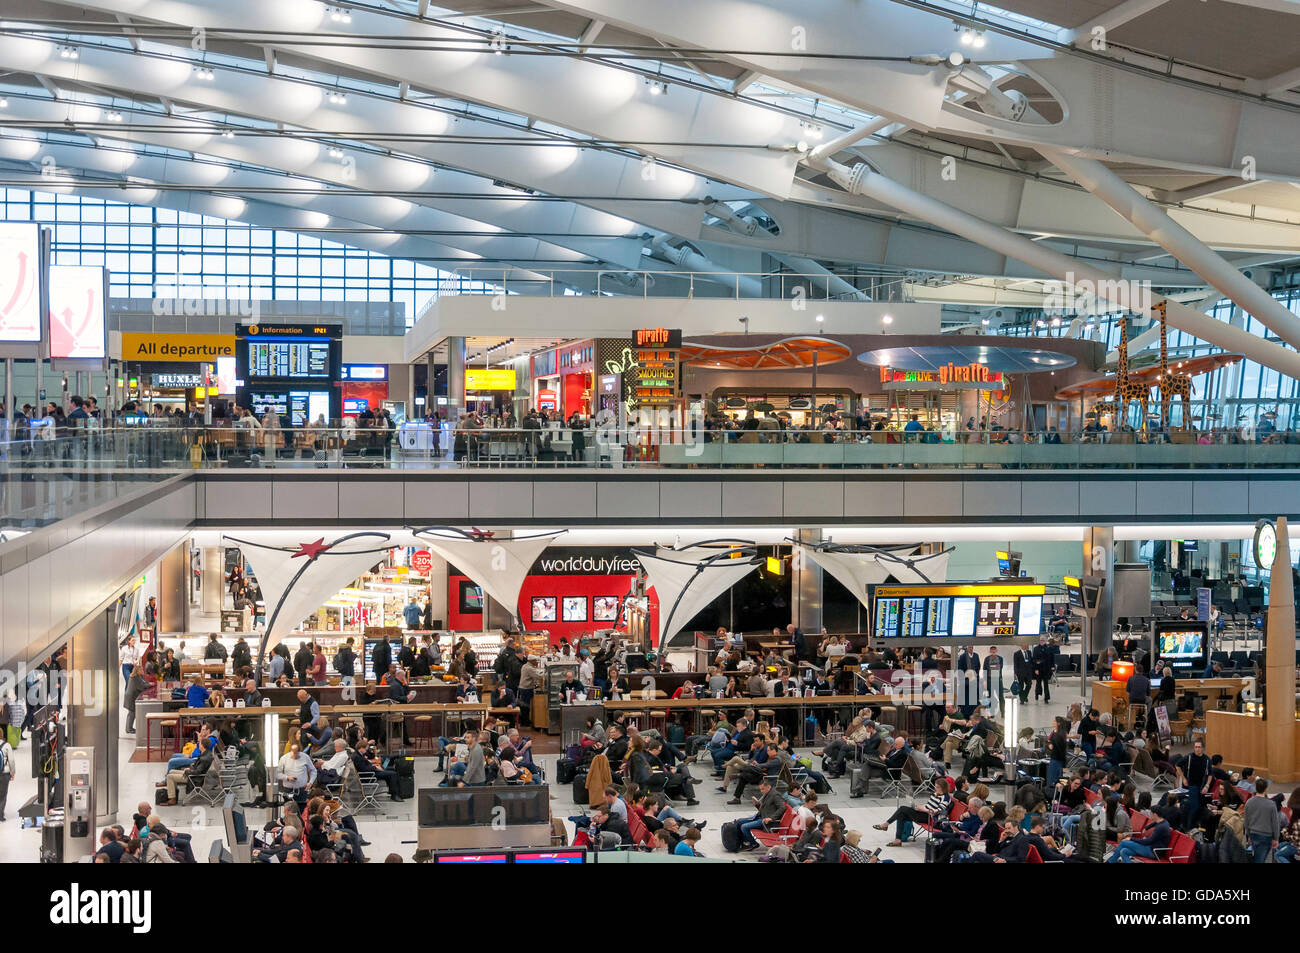 Departure Lounge at Terminal 5, Heathrow Airport. London Borough of Hounslow, Greater London, England, United Kingdom - Stock Image